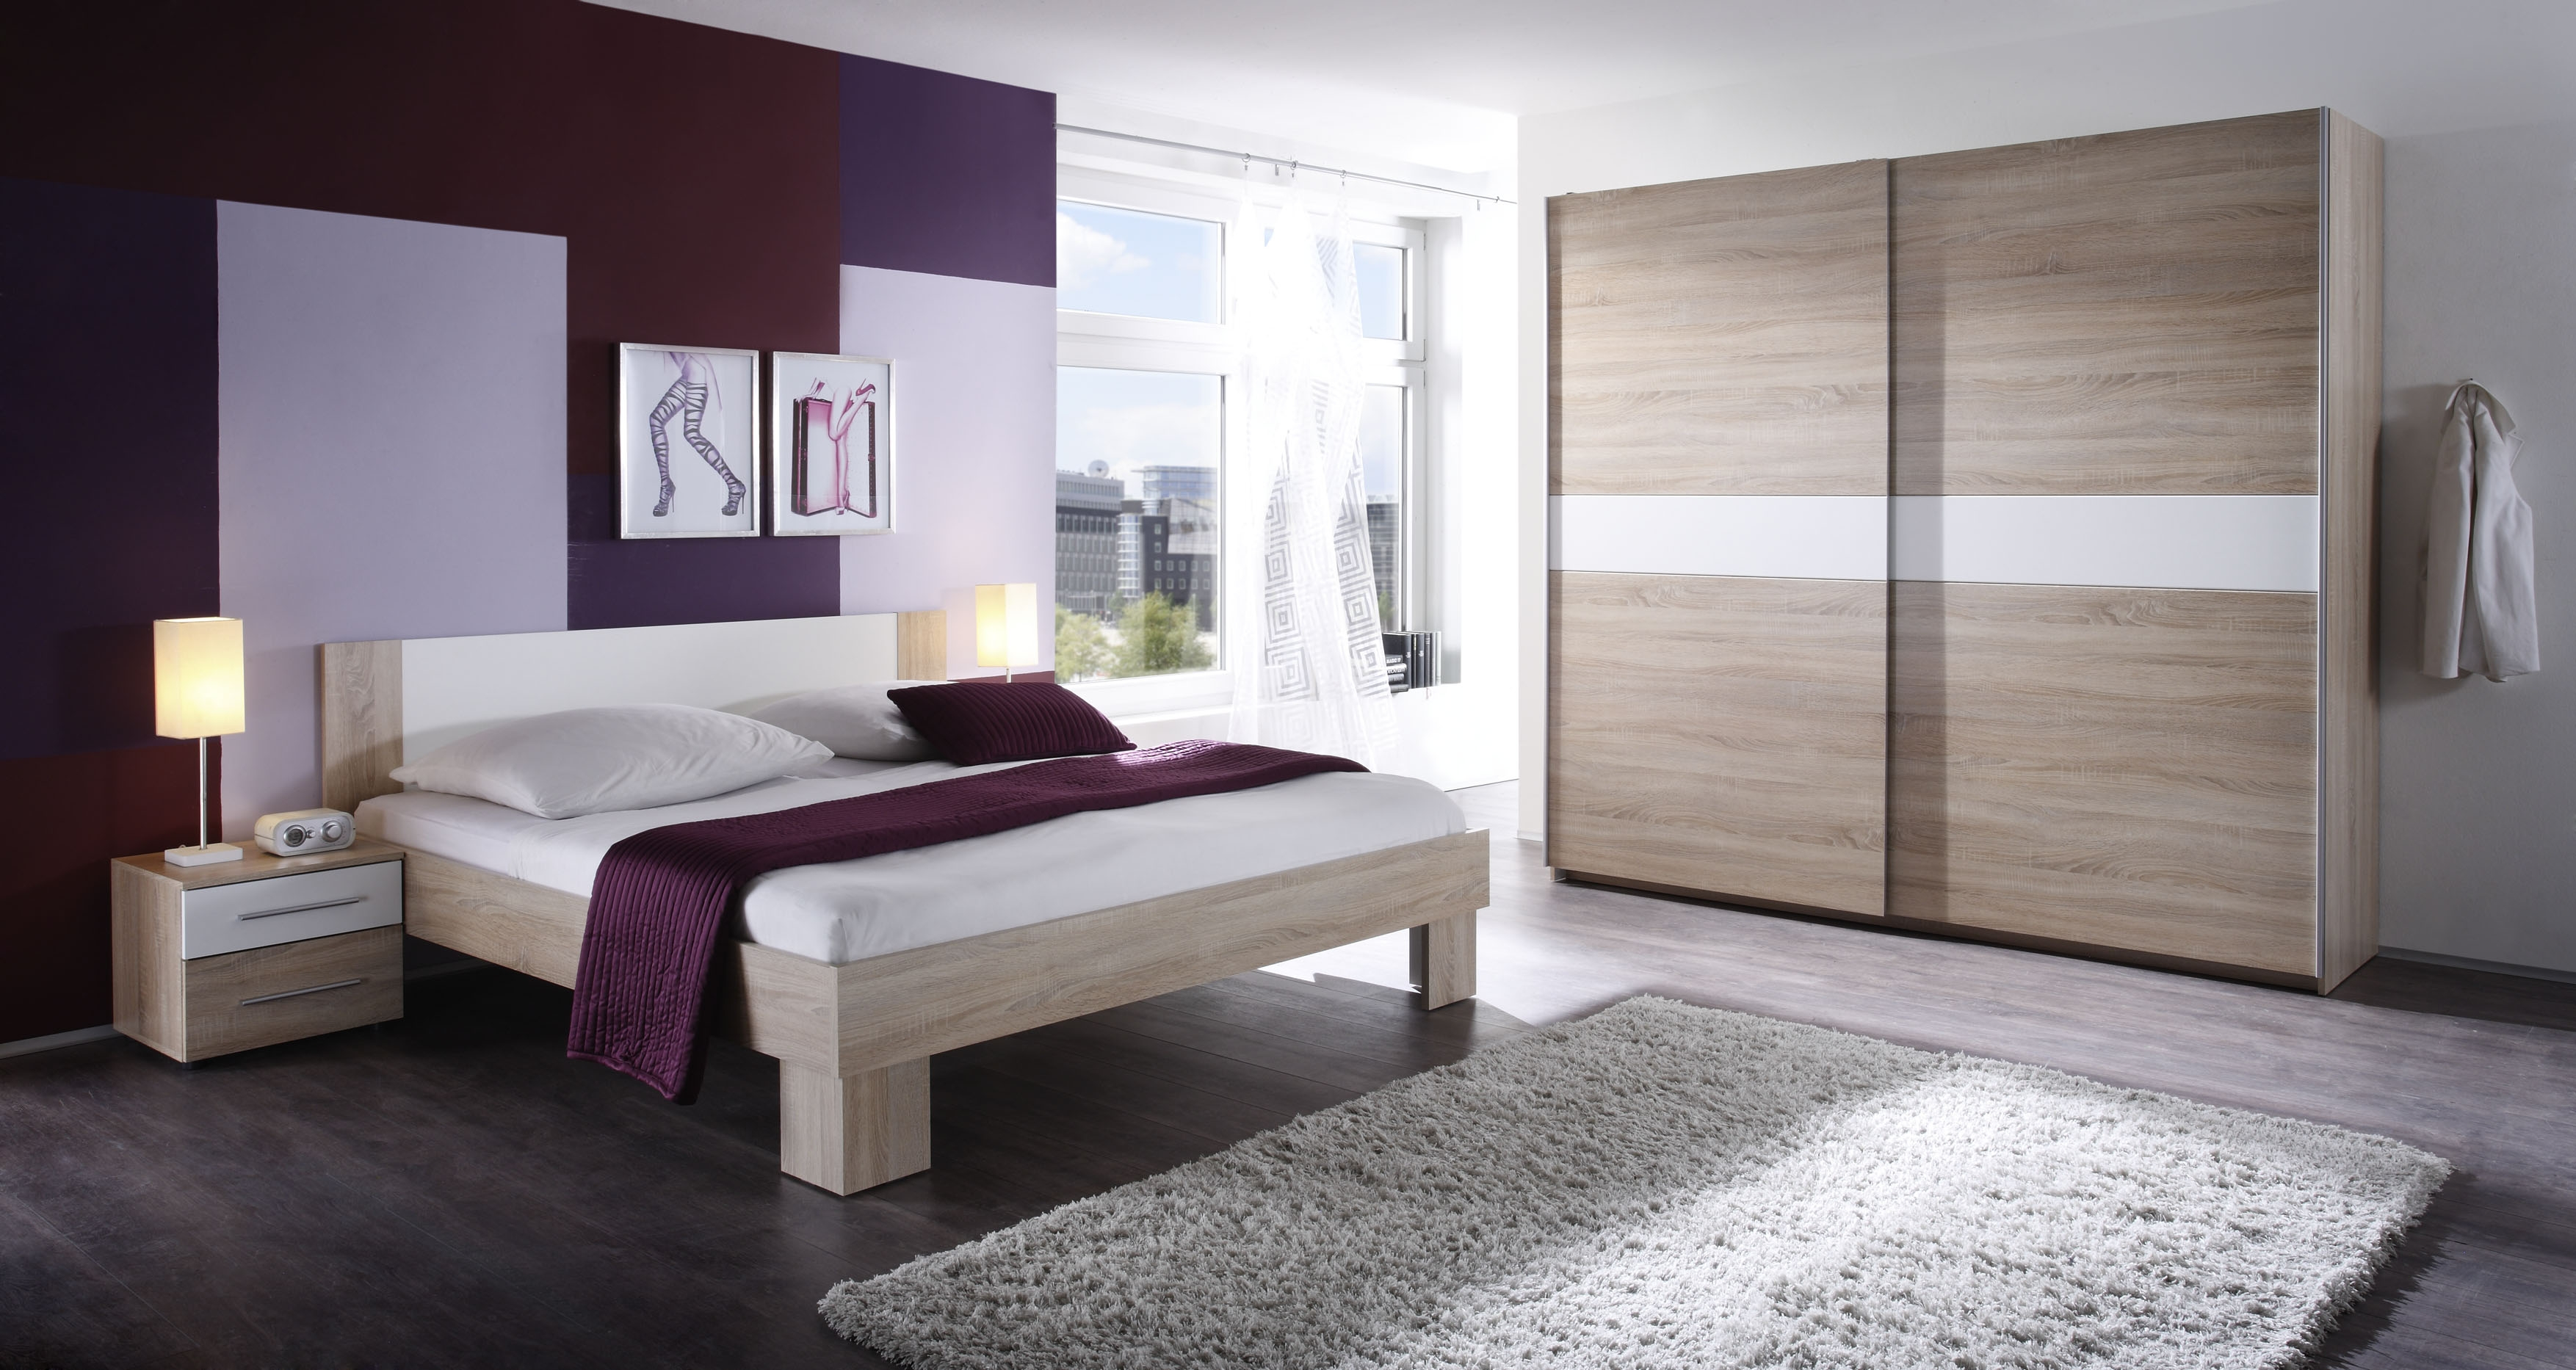 welche wandfarbe zu sonoma eiche mobel. Black Bedroom Furniture Sets. Home Design Ideas